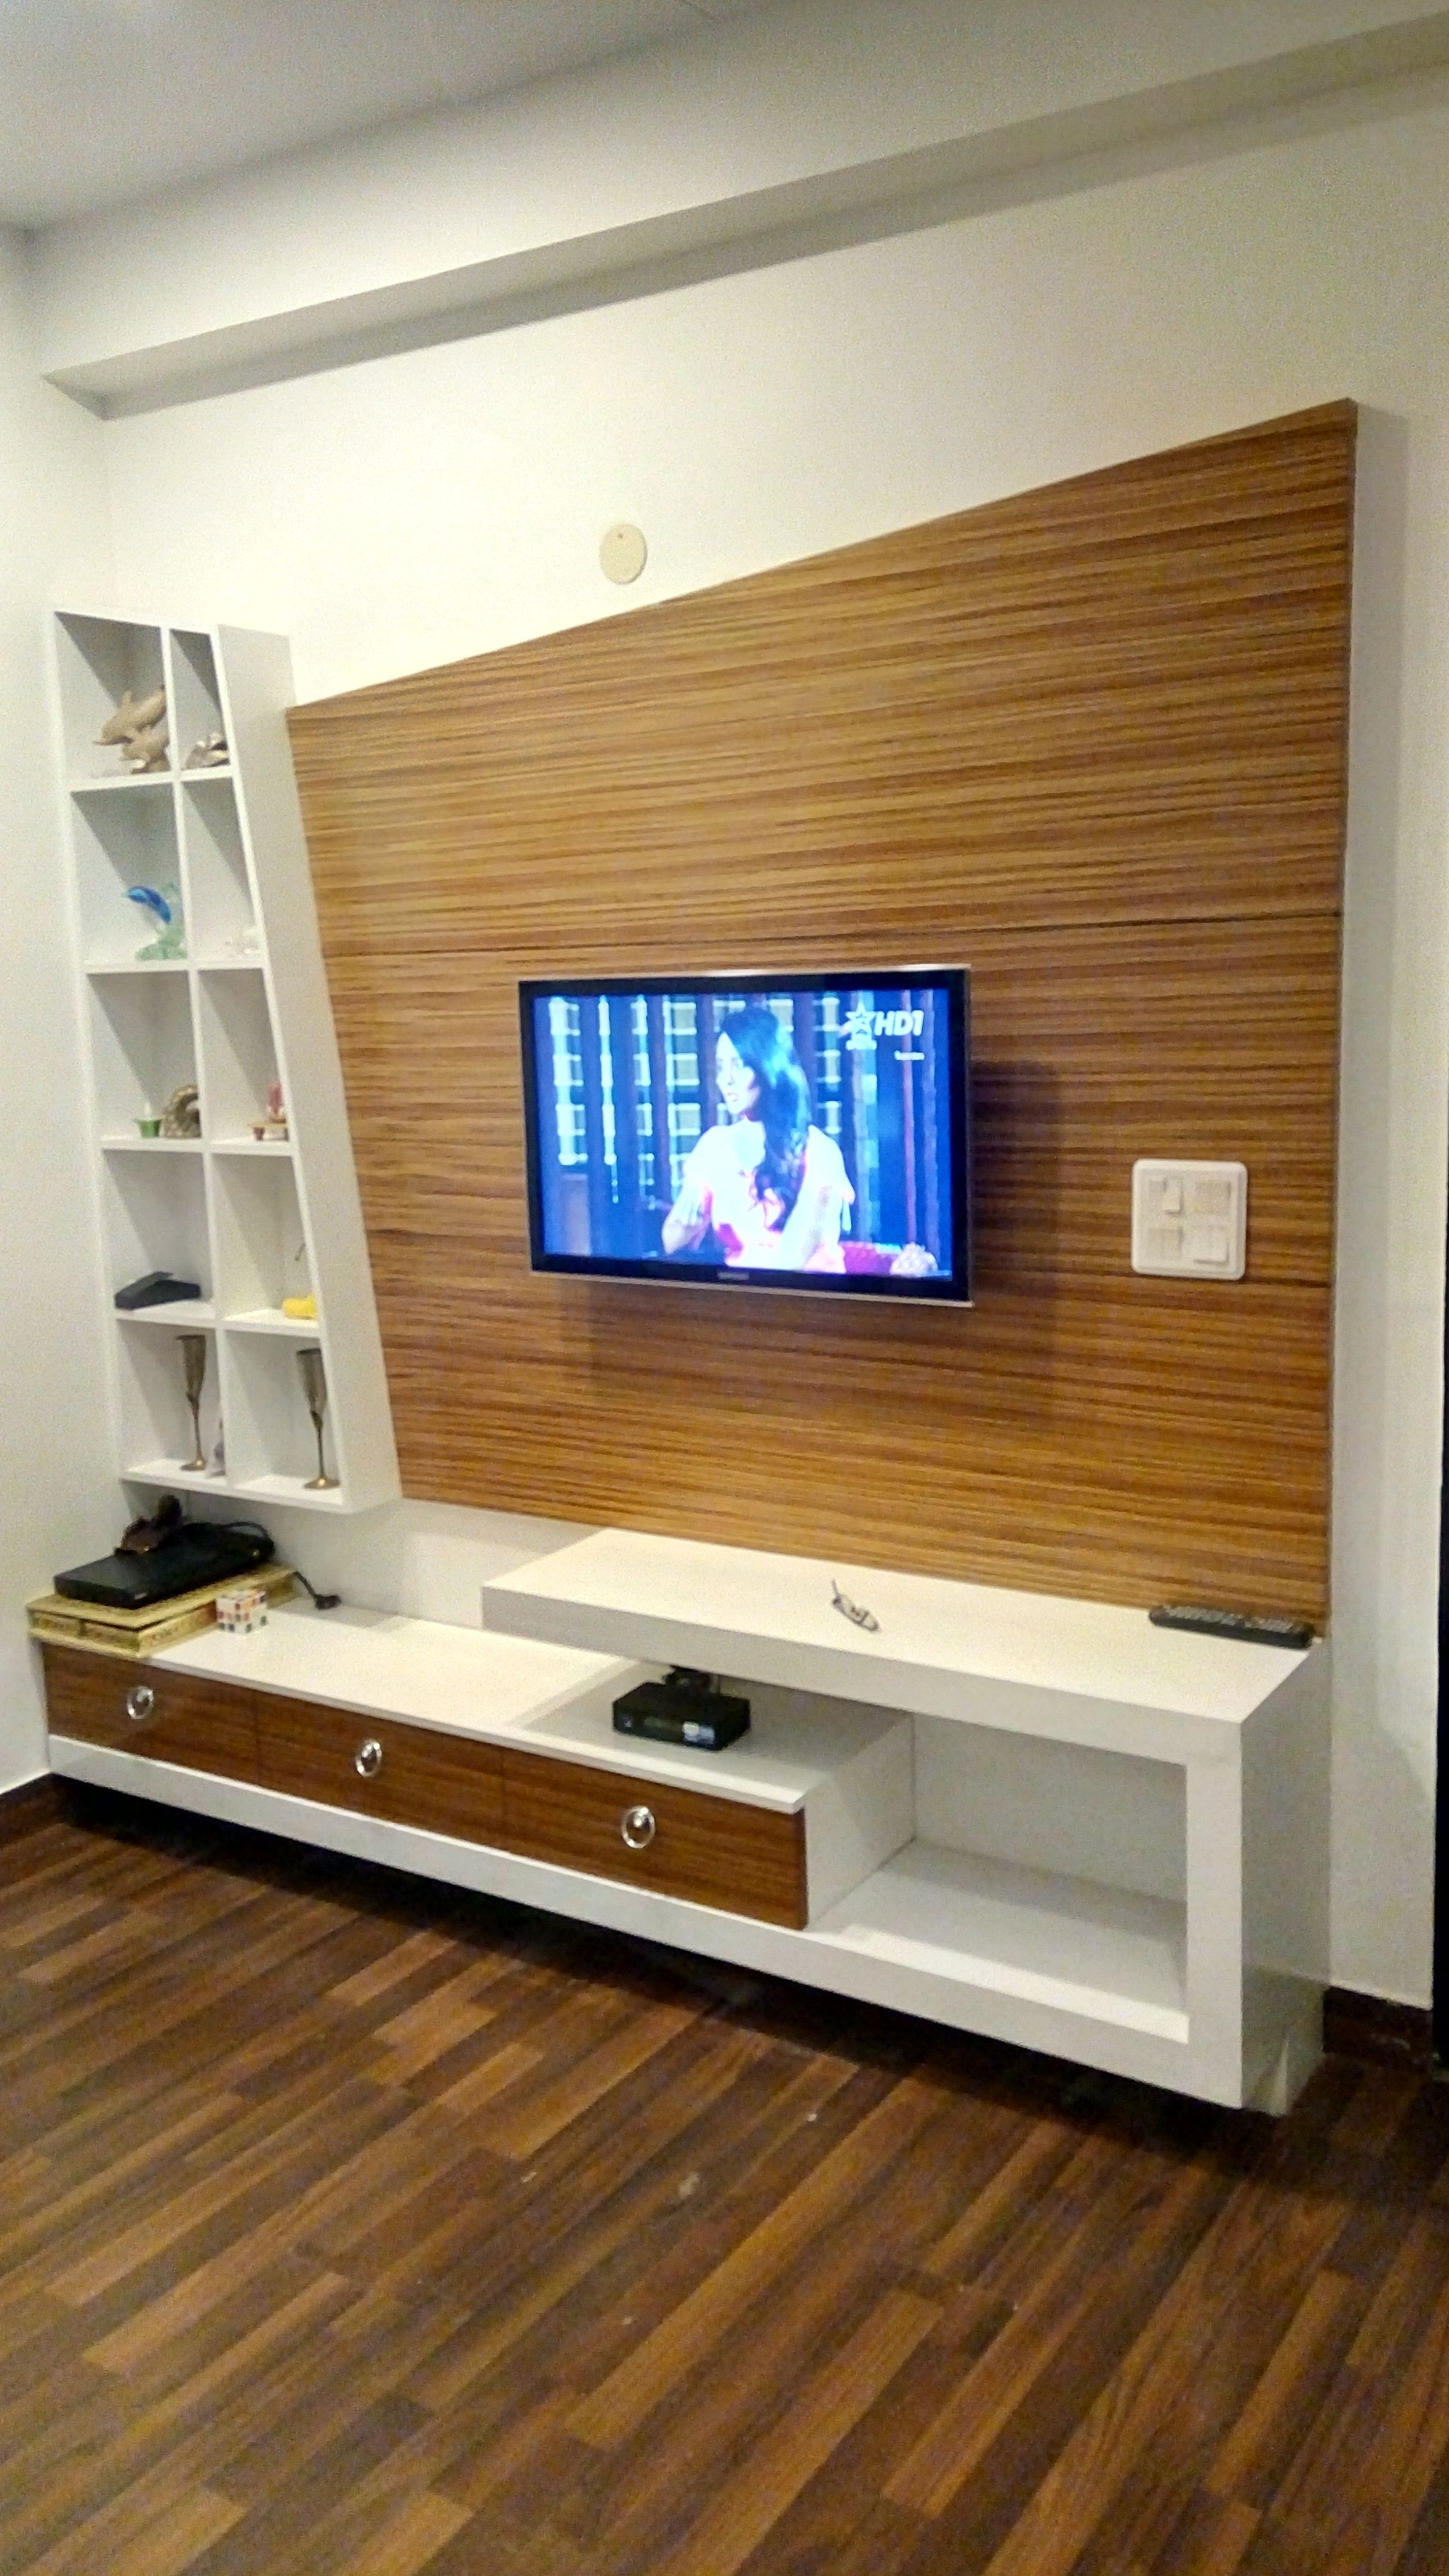 Lcd Panel Design Tv Unit Design Tv: Pin By ShUffLe DeSizN On L.E.D (With Images)